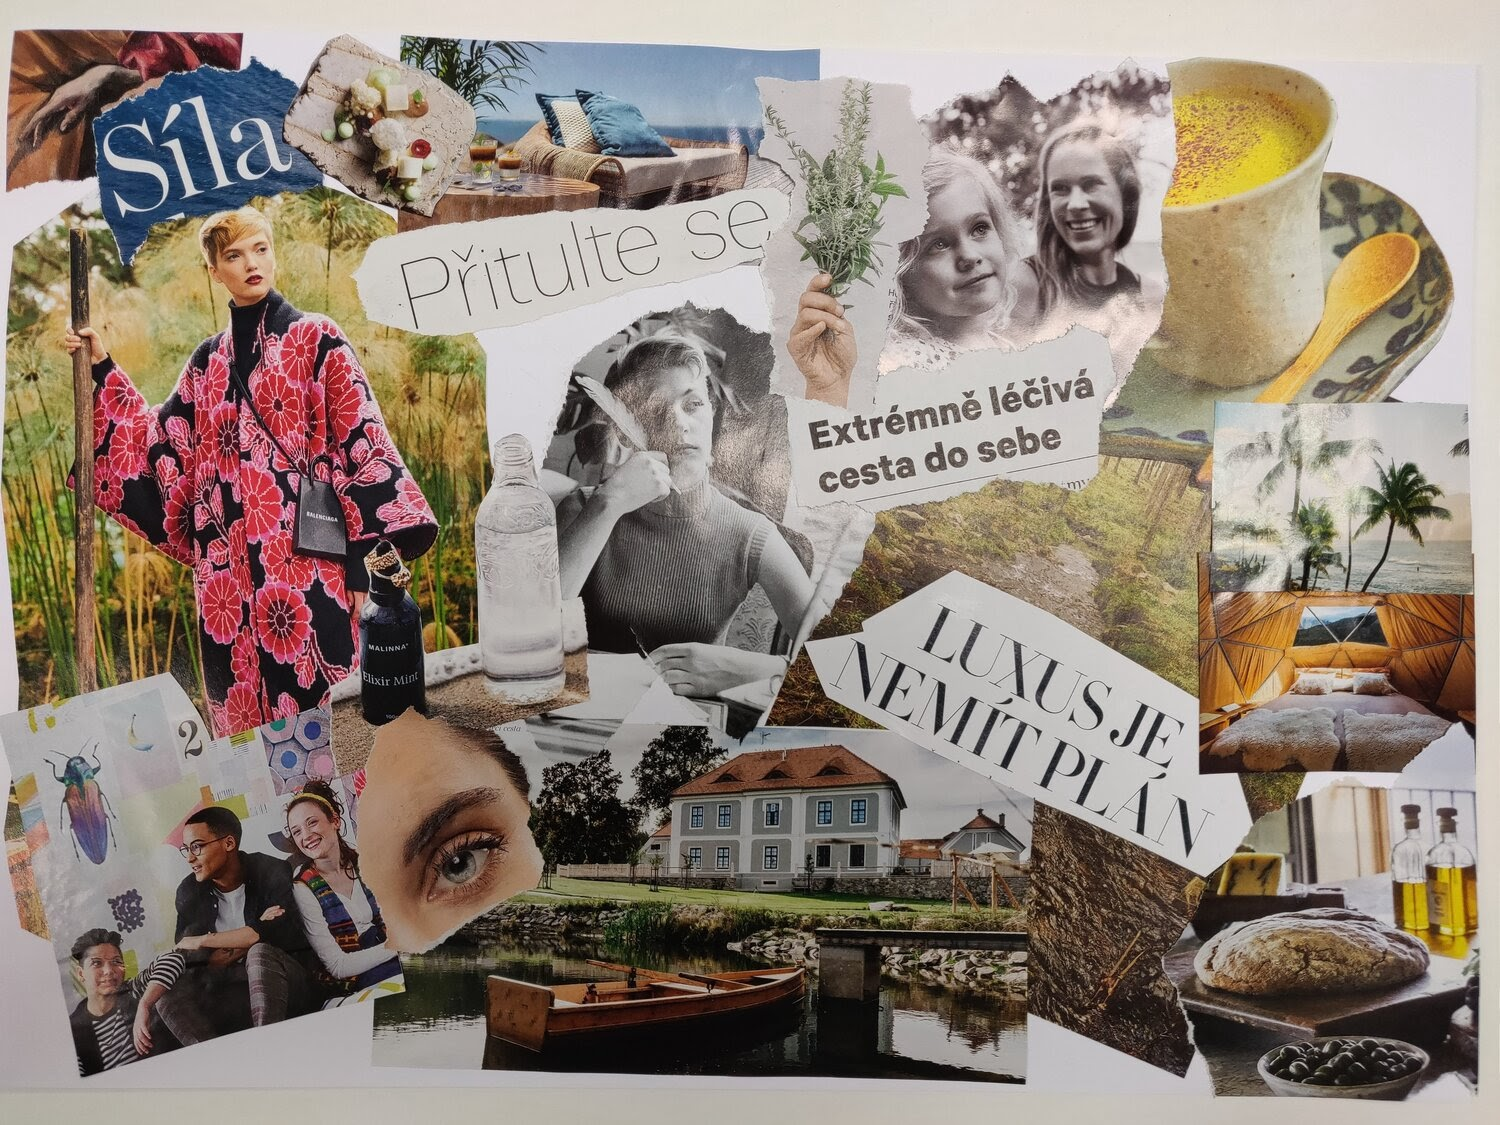 Pic: My 2020 vision board